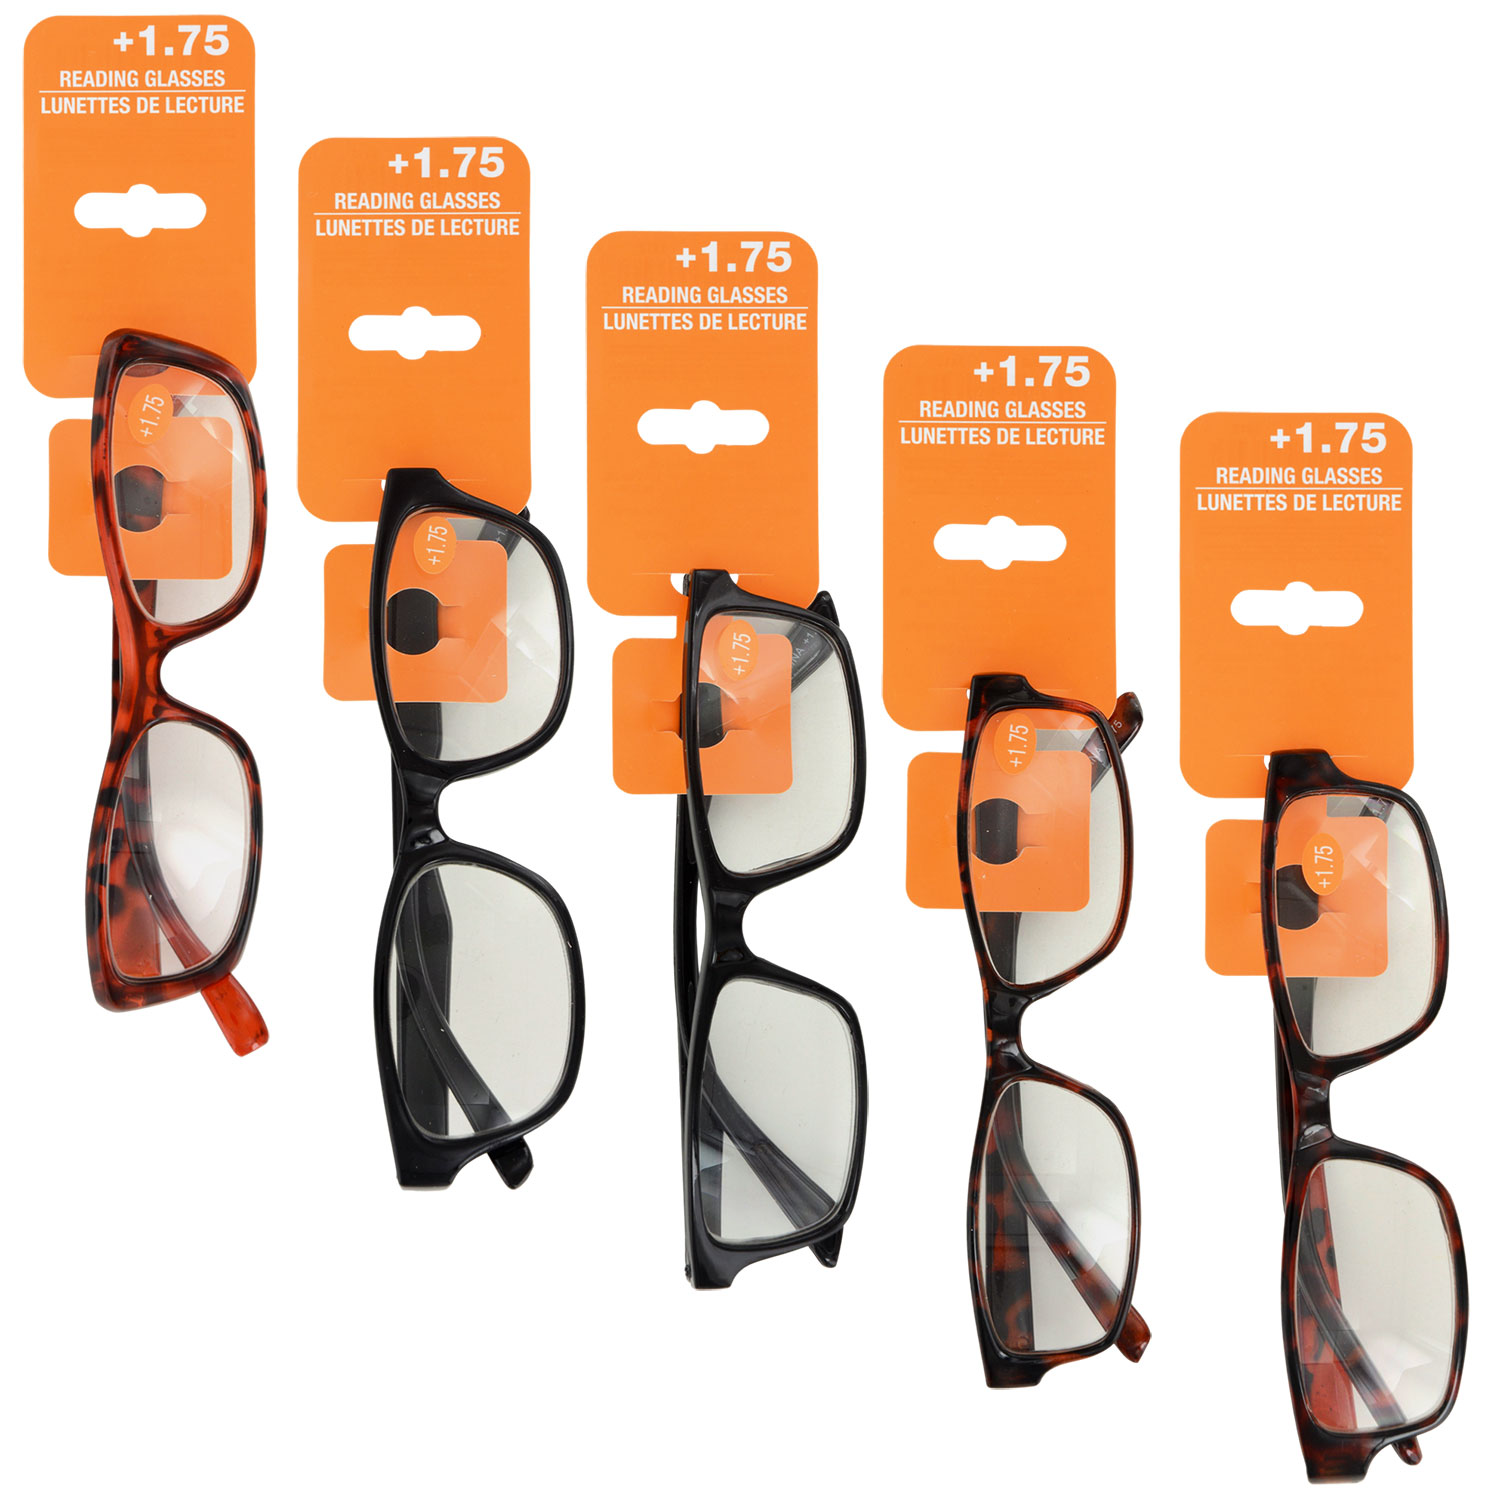 b0d6d7124192 Fashion Reading Glasses with +1.75 Diopters